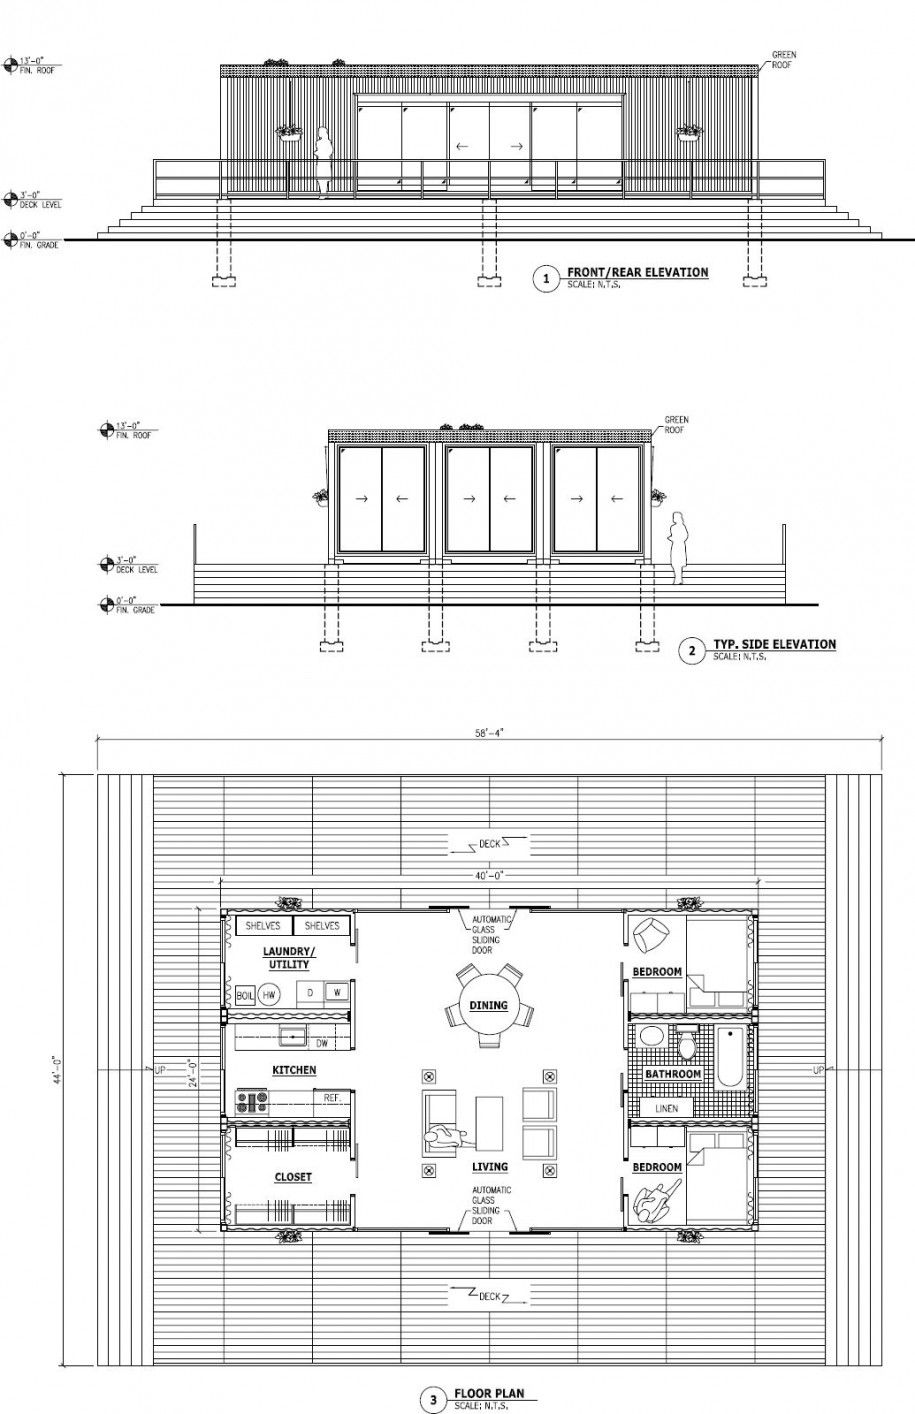 Best Shipping Container House Plans: Innovative Shipping Container ...